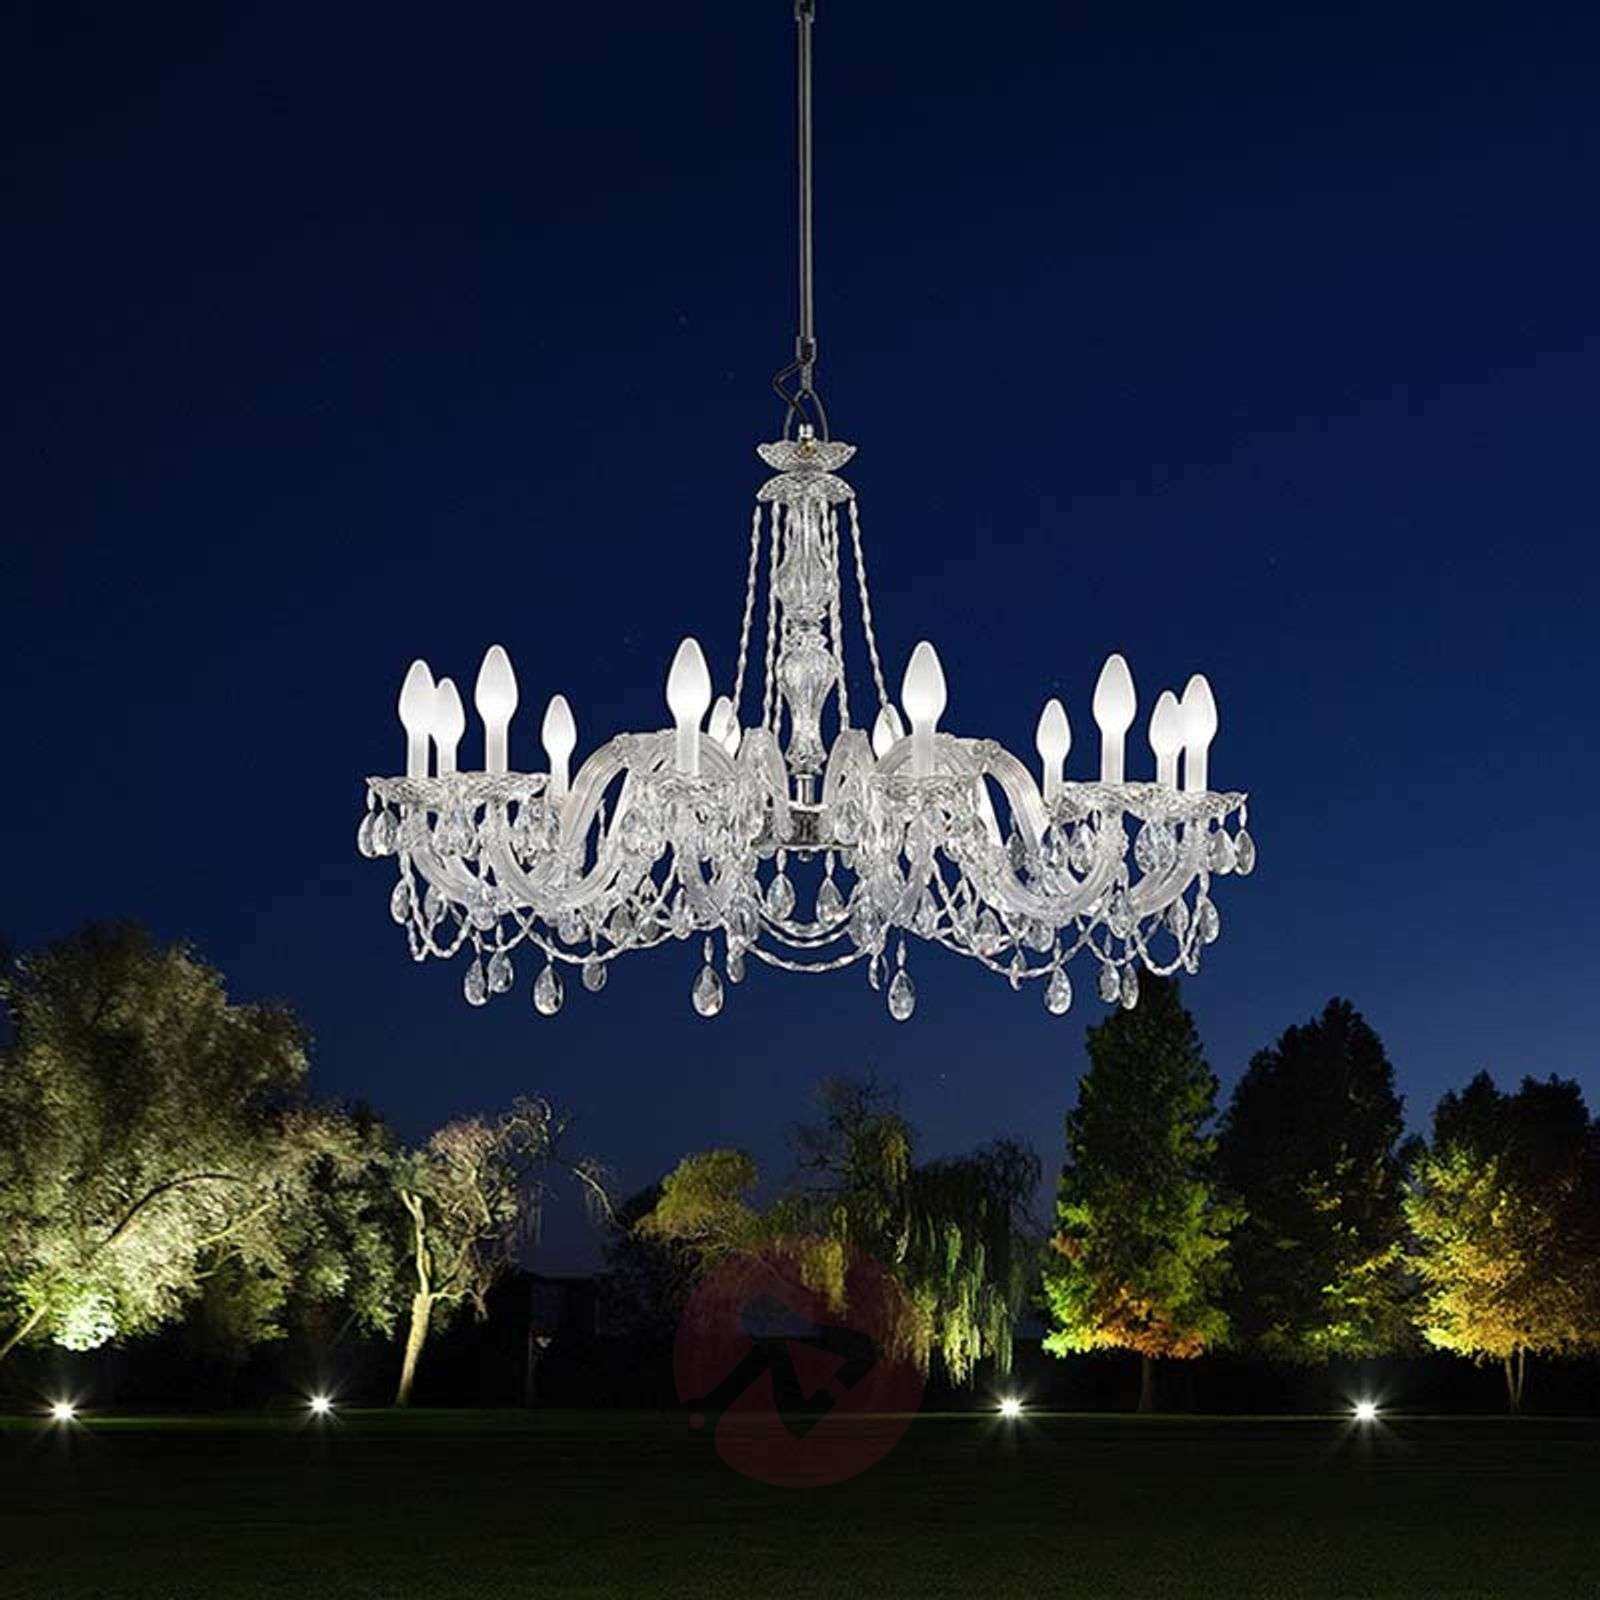 Drylight s12 12 bulb outdoor led chandelier lights drylight s12 12 bulb outdoor led chandelier 6517245 01 aloadofball Gallery